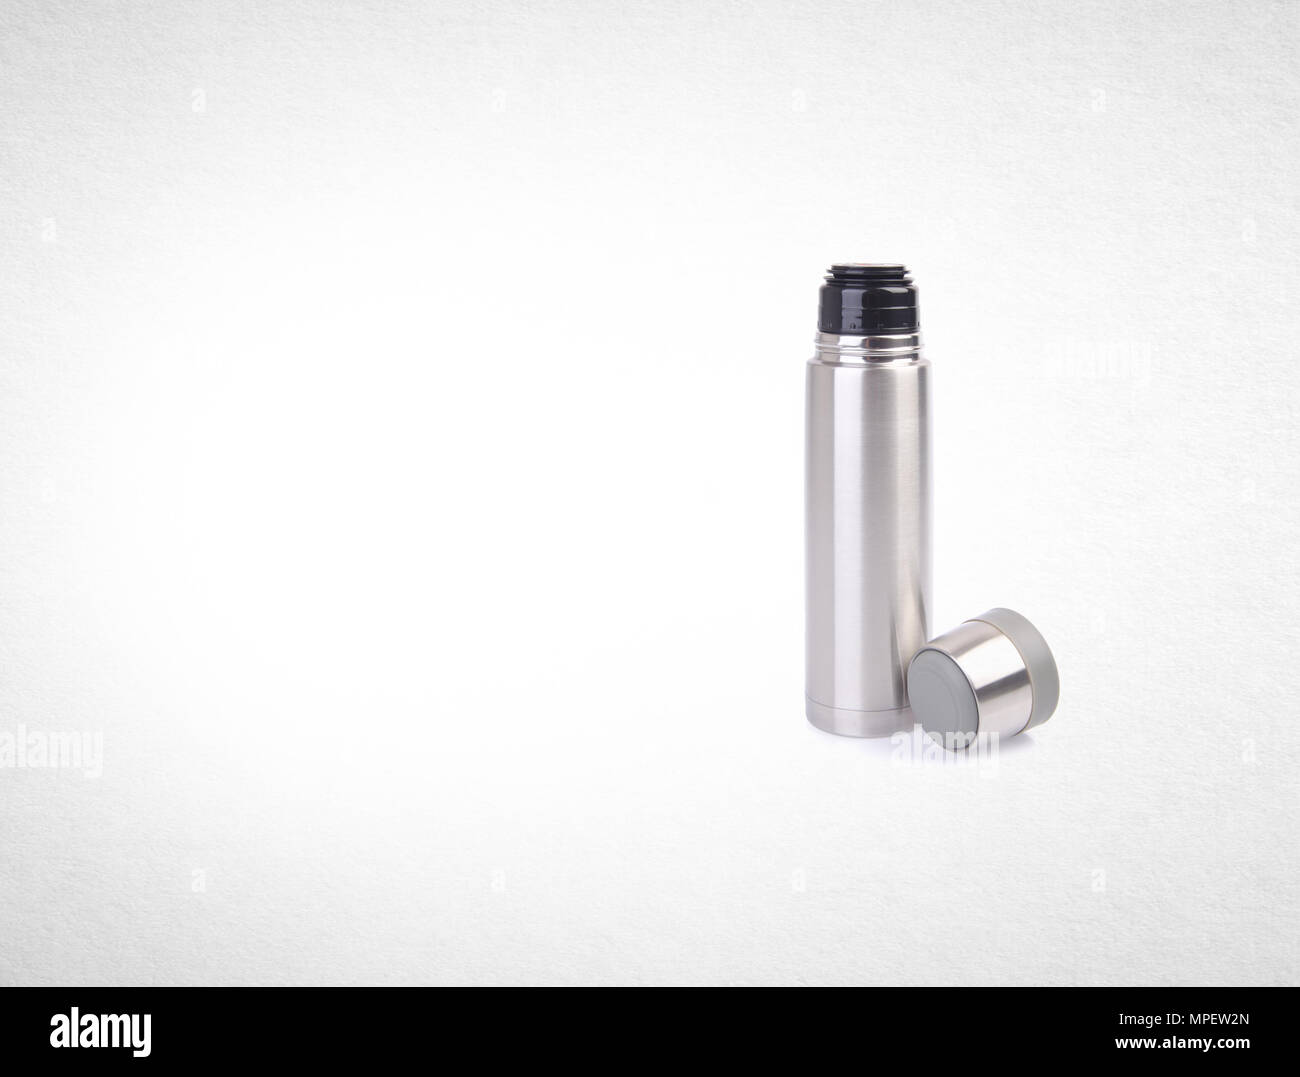 Stee Stock Photos & Stee Stock Images - Alamy